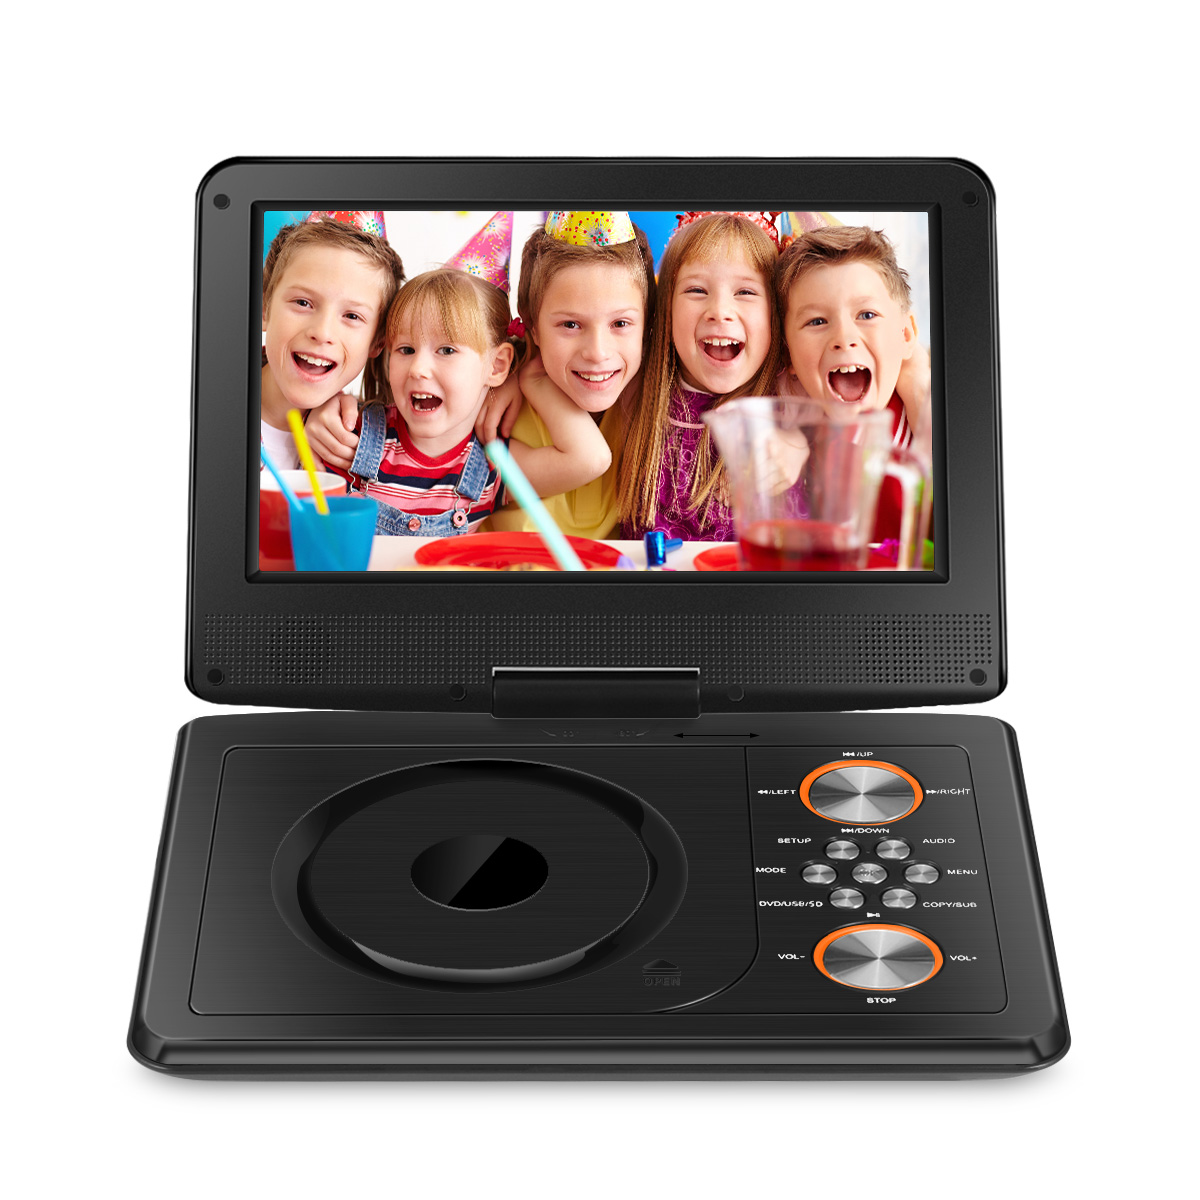 fornorm-portable-fontbdvd-b-font-player-1600mah-9-portable-cd-player-fontbdvd-b-font-player-with-rem